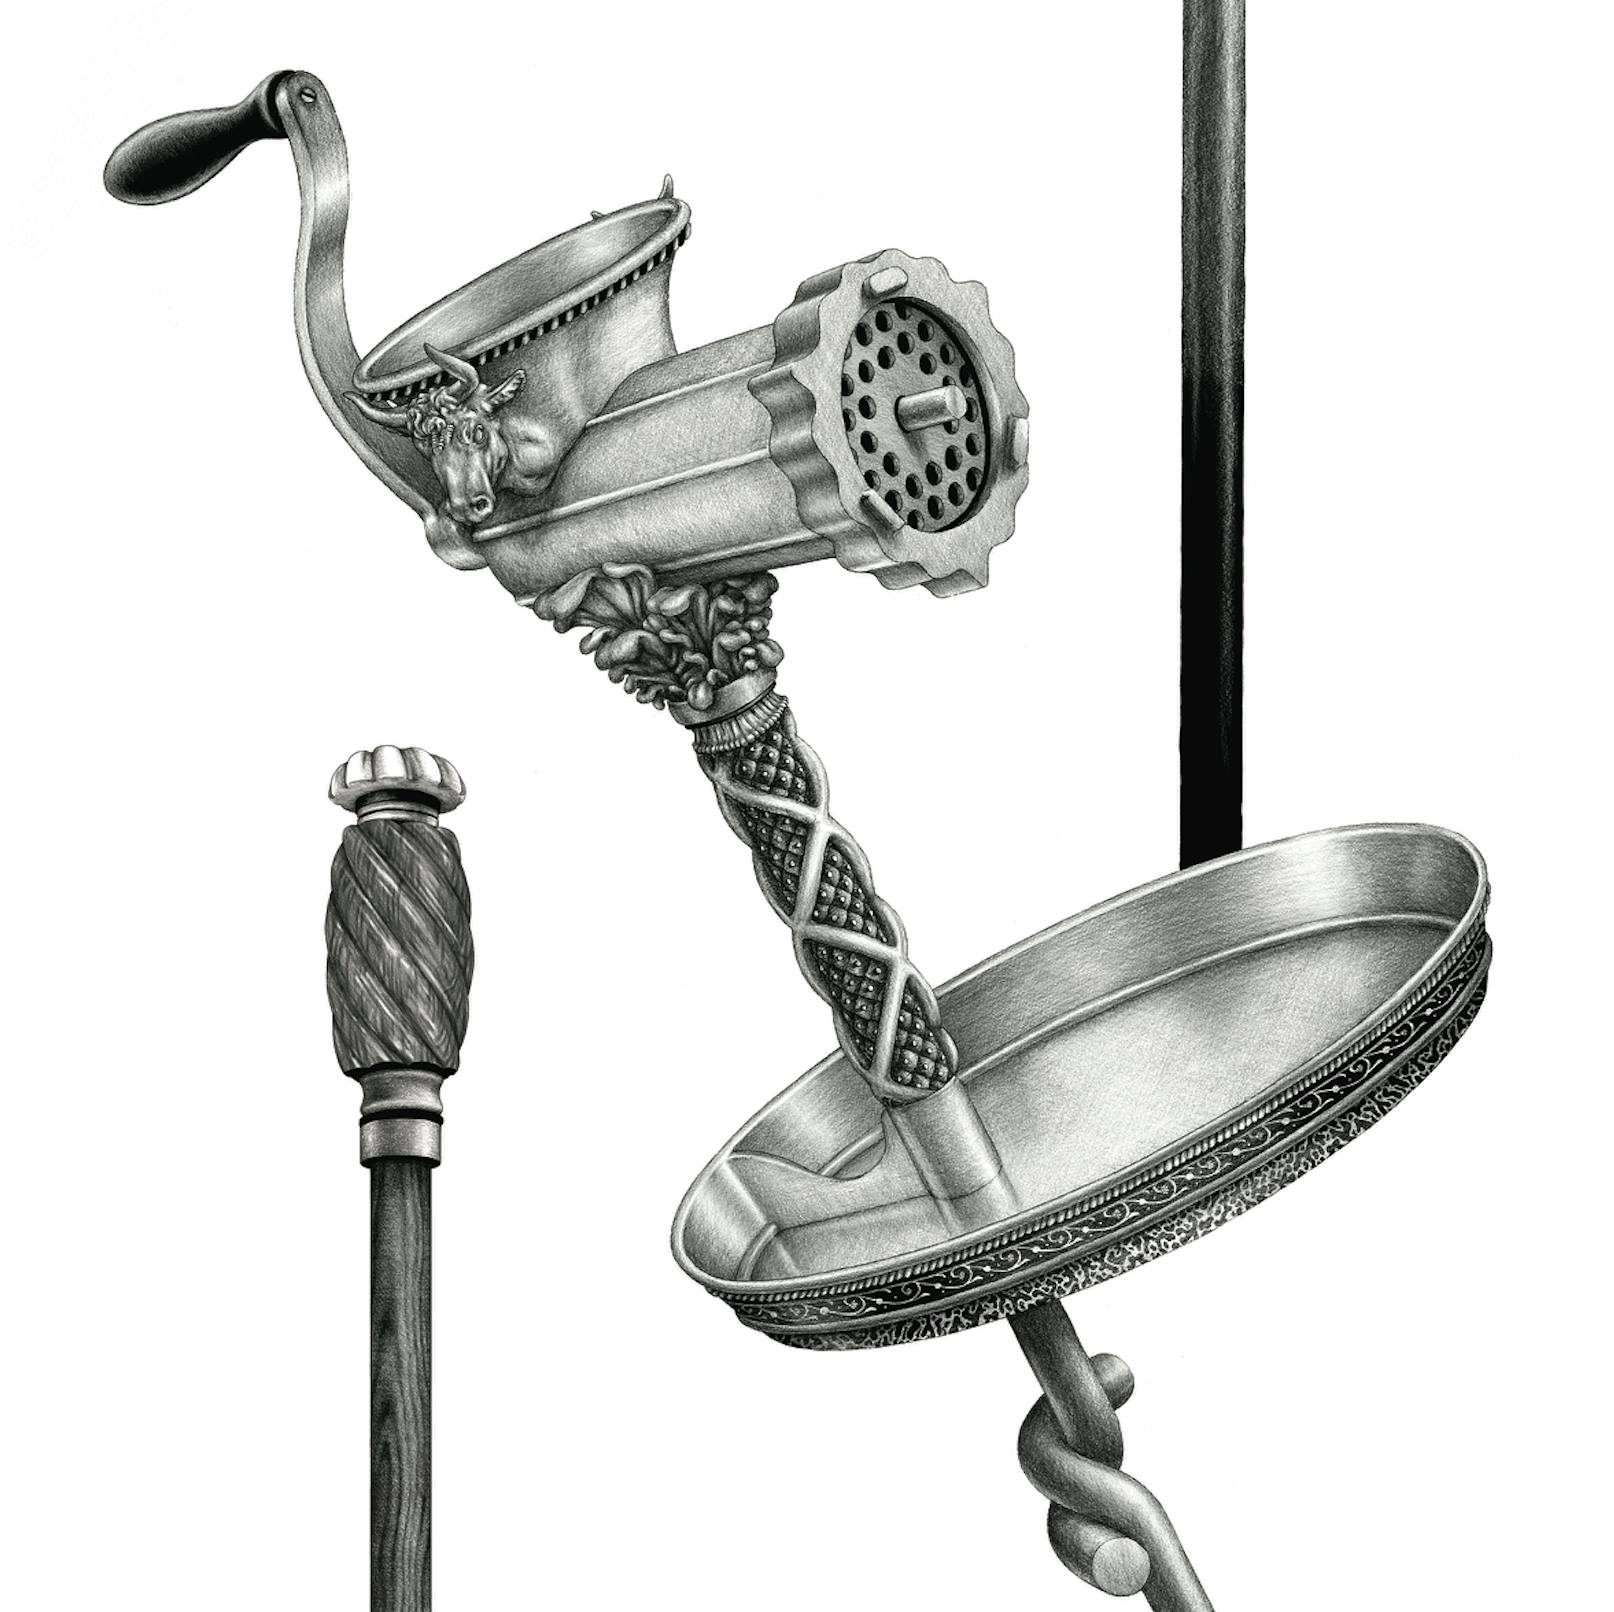 Ugo Gattoni Hermes walking sticks illustration projet dessin draw-4